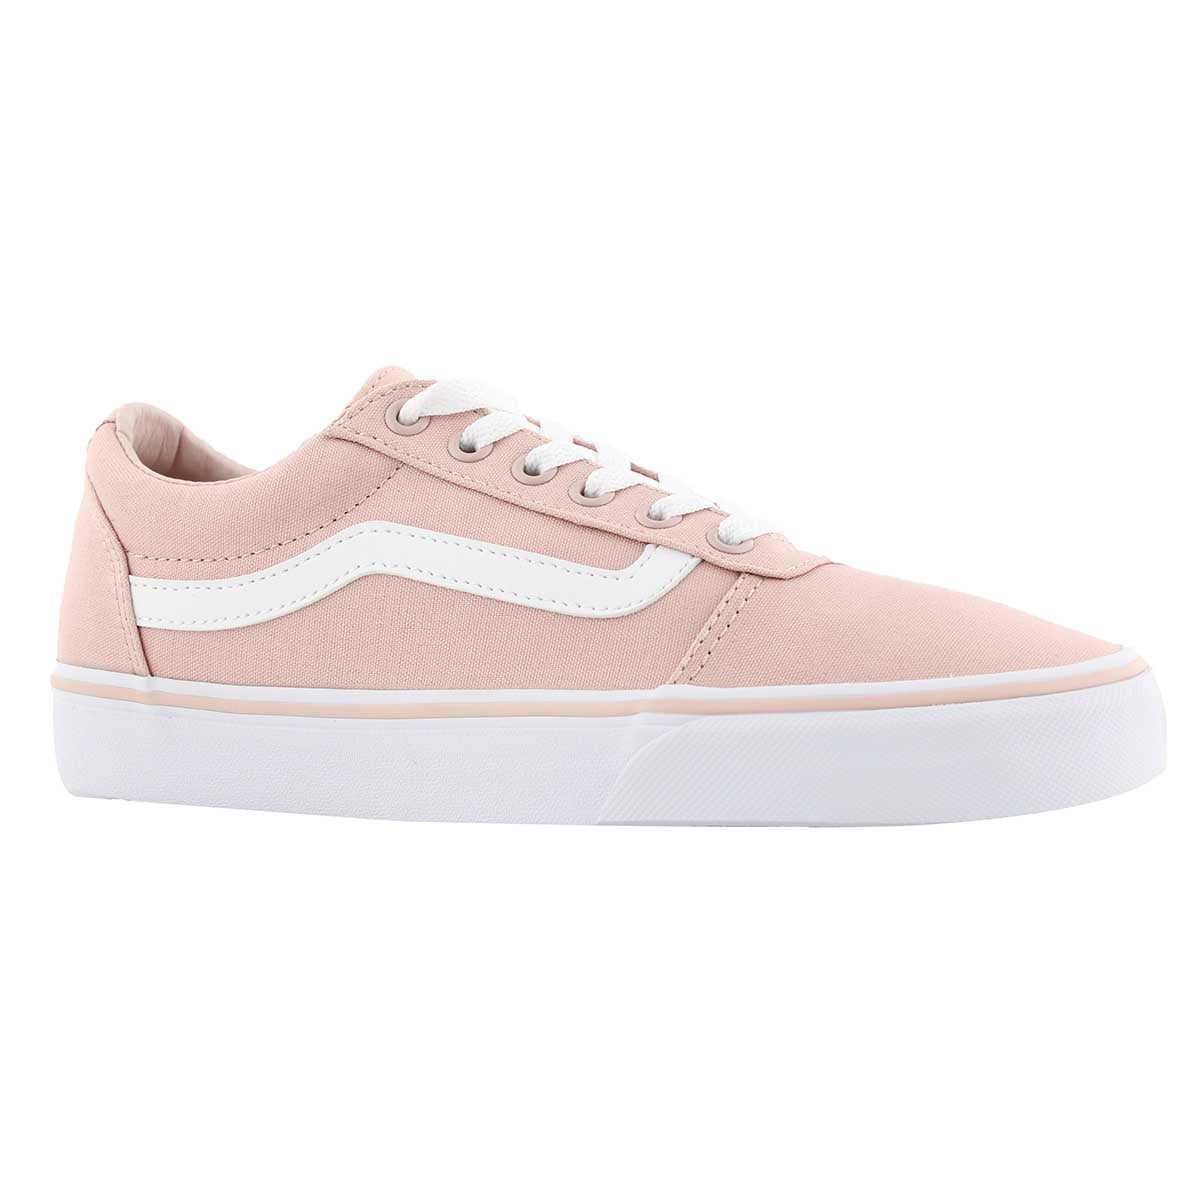 715a9d8d0d04 Vans Women s WARD sepia rose lace up sneakers